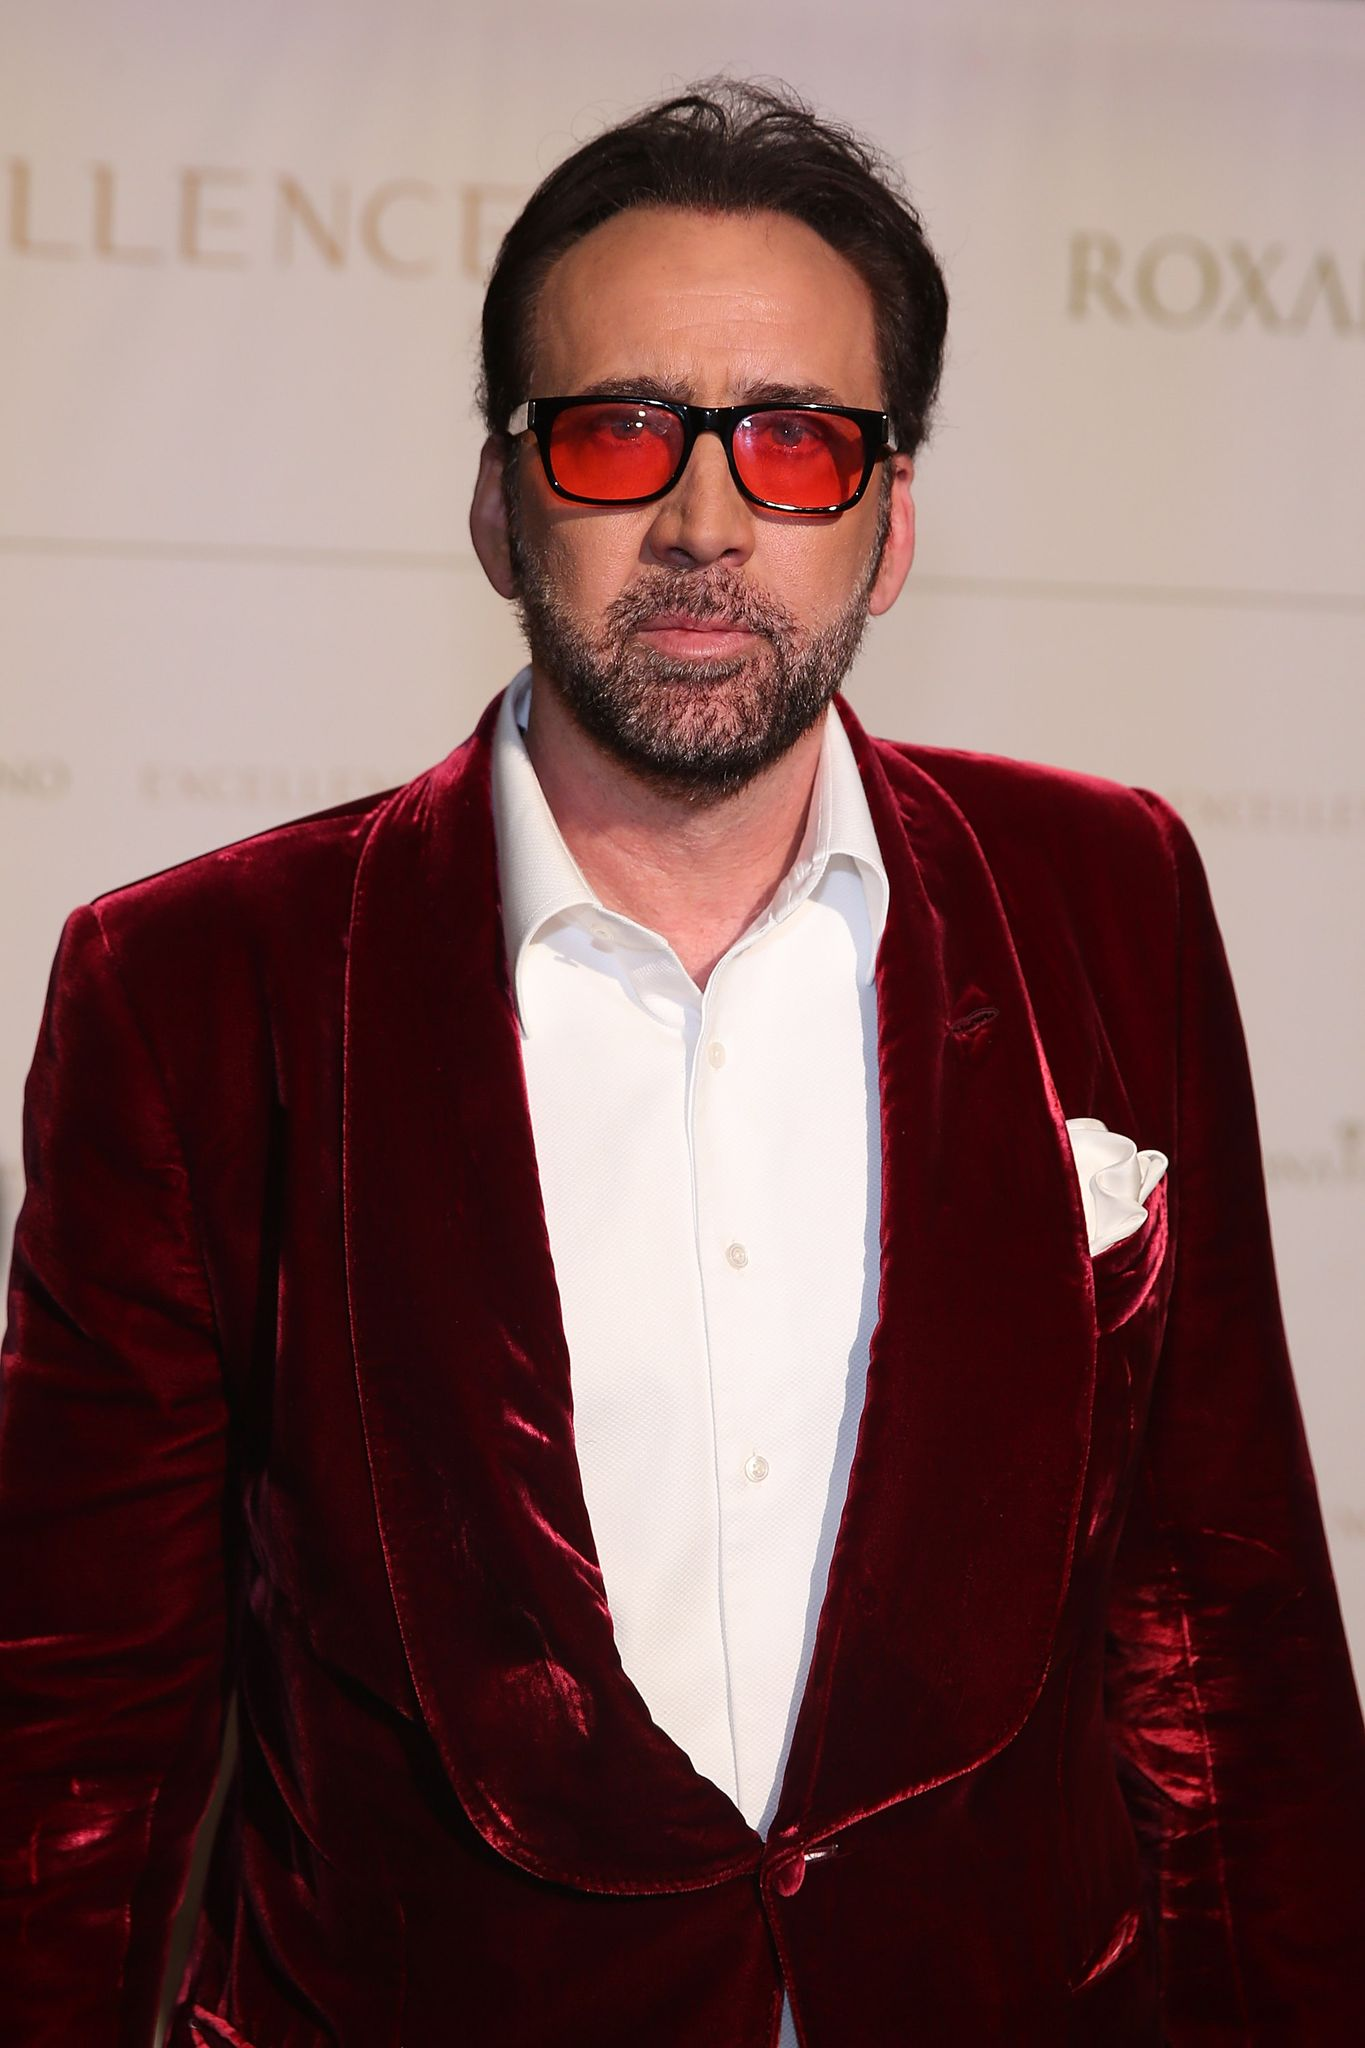 Nicolas cage attends the closing night reception at Salone del Tronoin Palazzo Corsini as part of Celebrity Fight Night Italy Benefiting The Andrea Bocelli Foundation | Getty Images